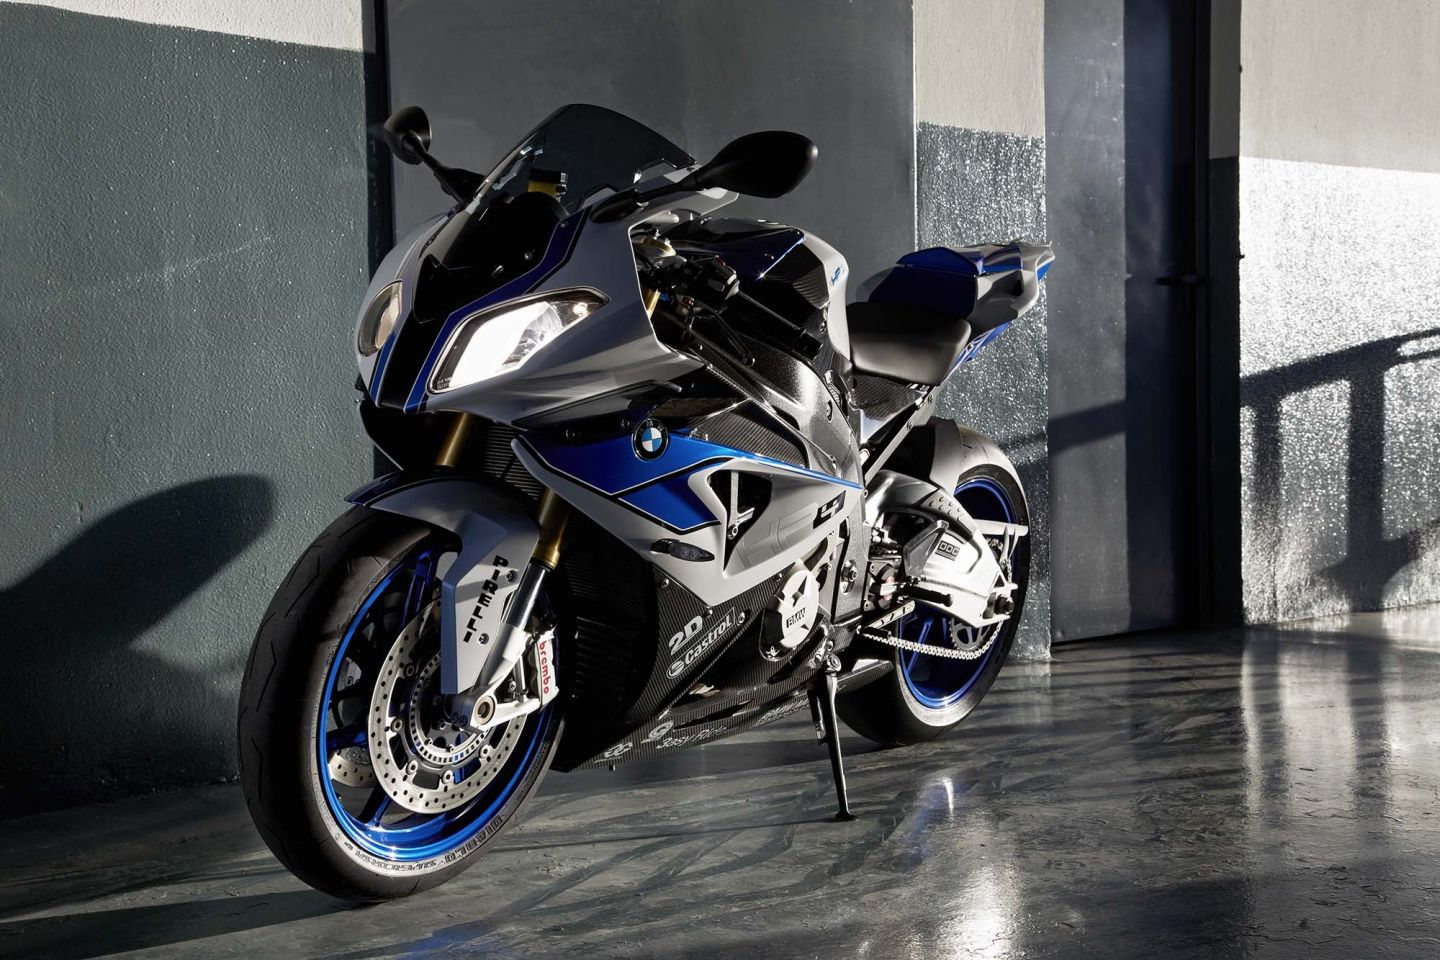 Sport Bike Wallpaper For Iphone 4: BMW HP4 Becomes Available On December 1st